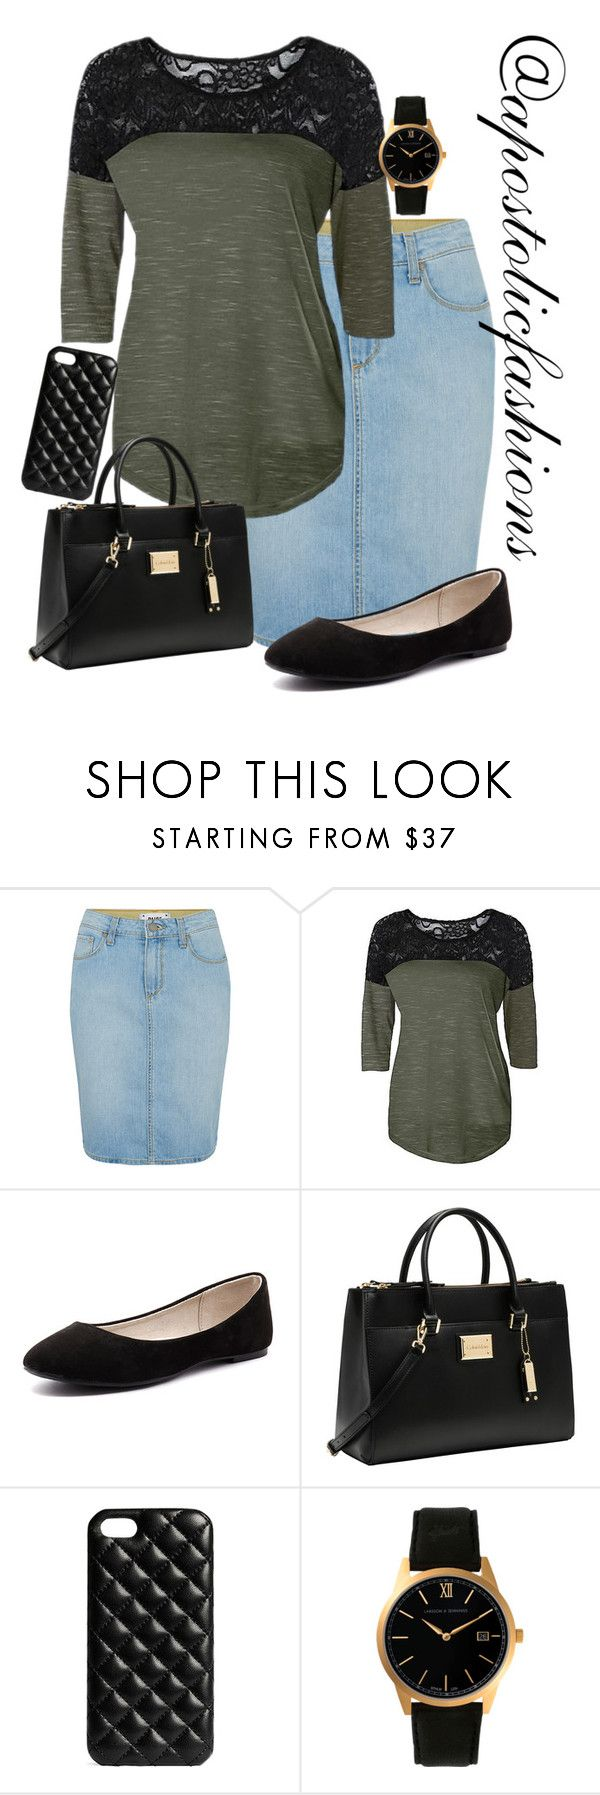 """""""Apostolic Fashions #1466"""" by apostolicfashions ❤ liked on Polyvore featuring Paige Denim, Verali, Calvin Klein, The Case Factory, Larsson & Jennings, modestlykay and modestlywhit"""